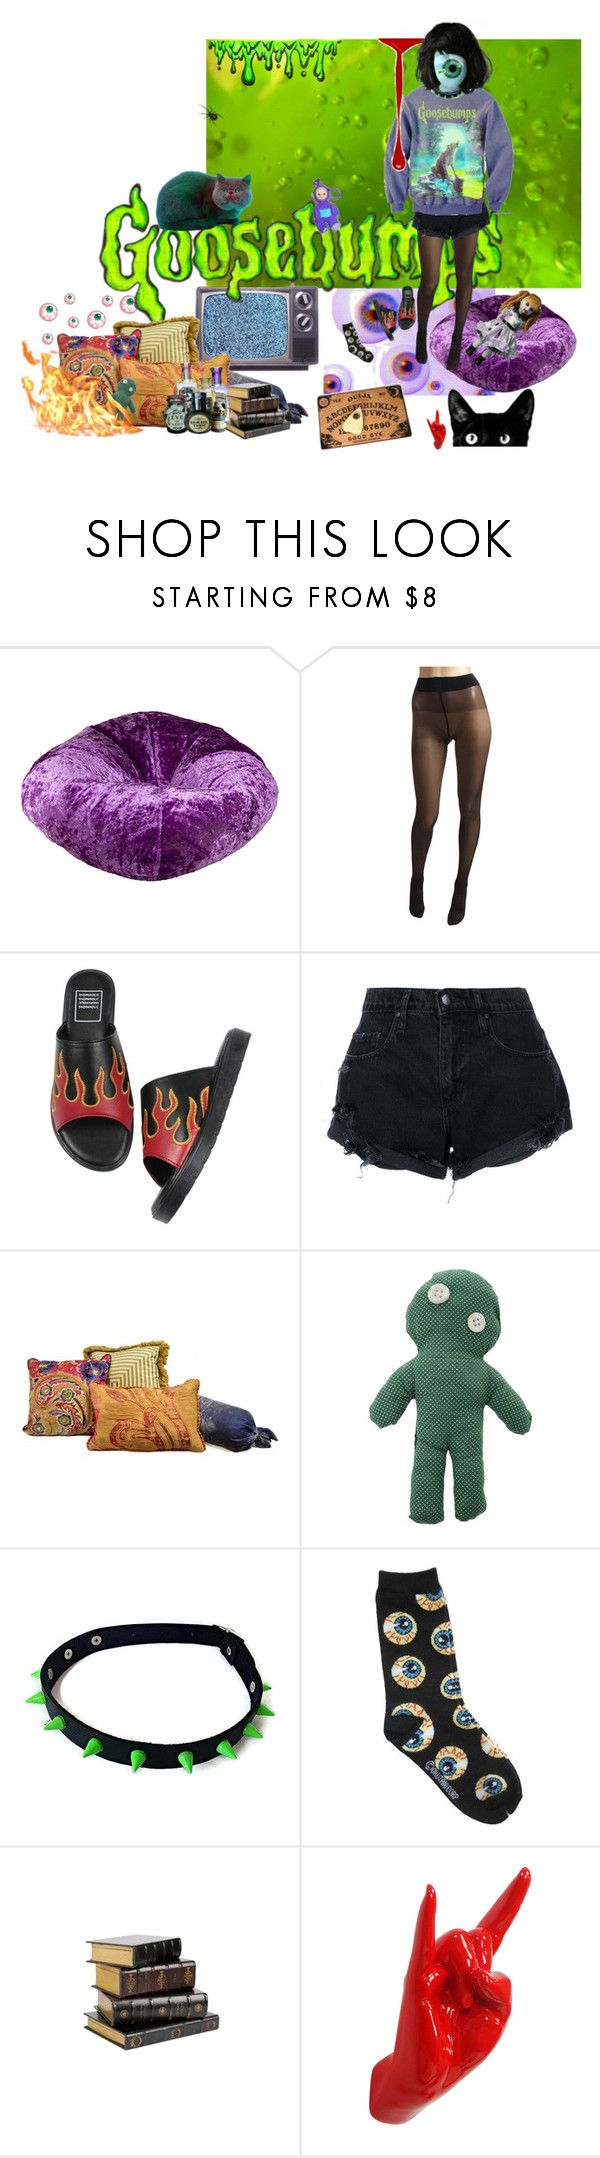 """""""Goosebumps #2"""" by moehelene ❤ liked on Polyvore featuring Ace Bayou, Wolford, Nobody Denim, Sissa, Thelermont Hupton, Halloween, creepy, october and GOOSEBUMPS"""